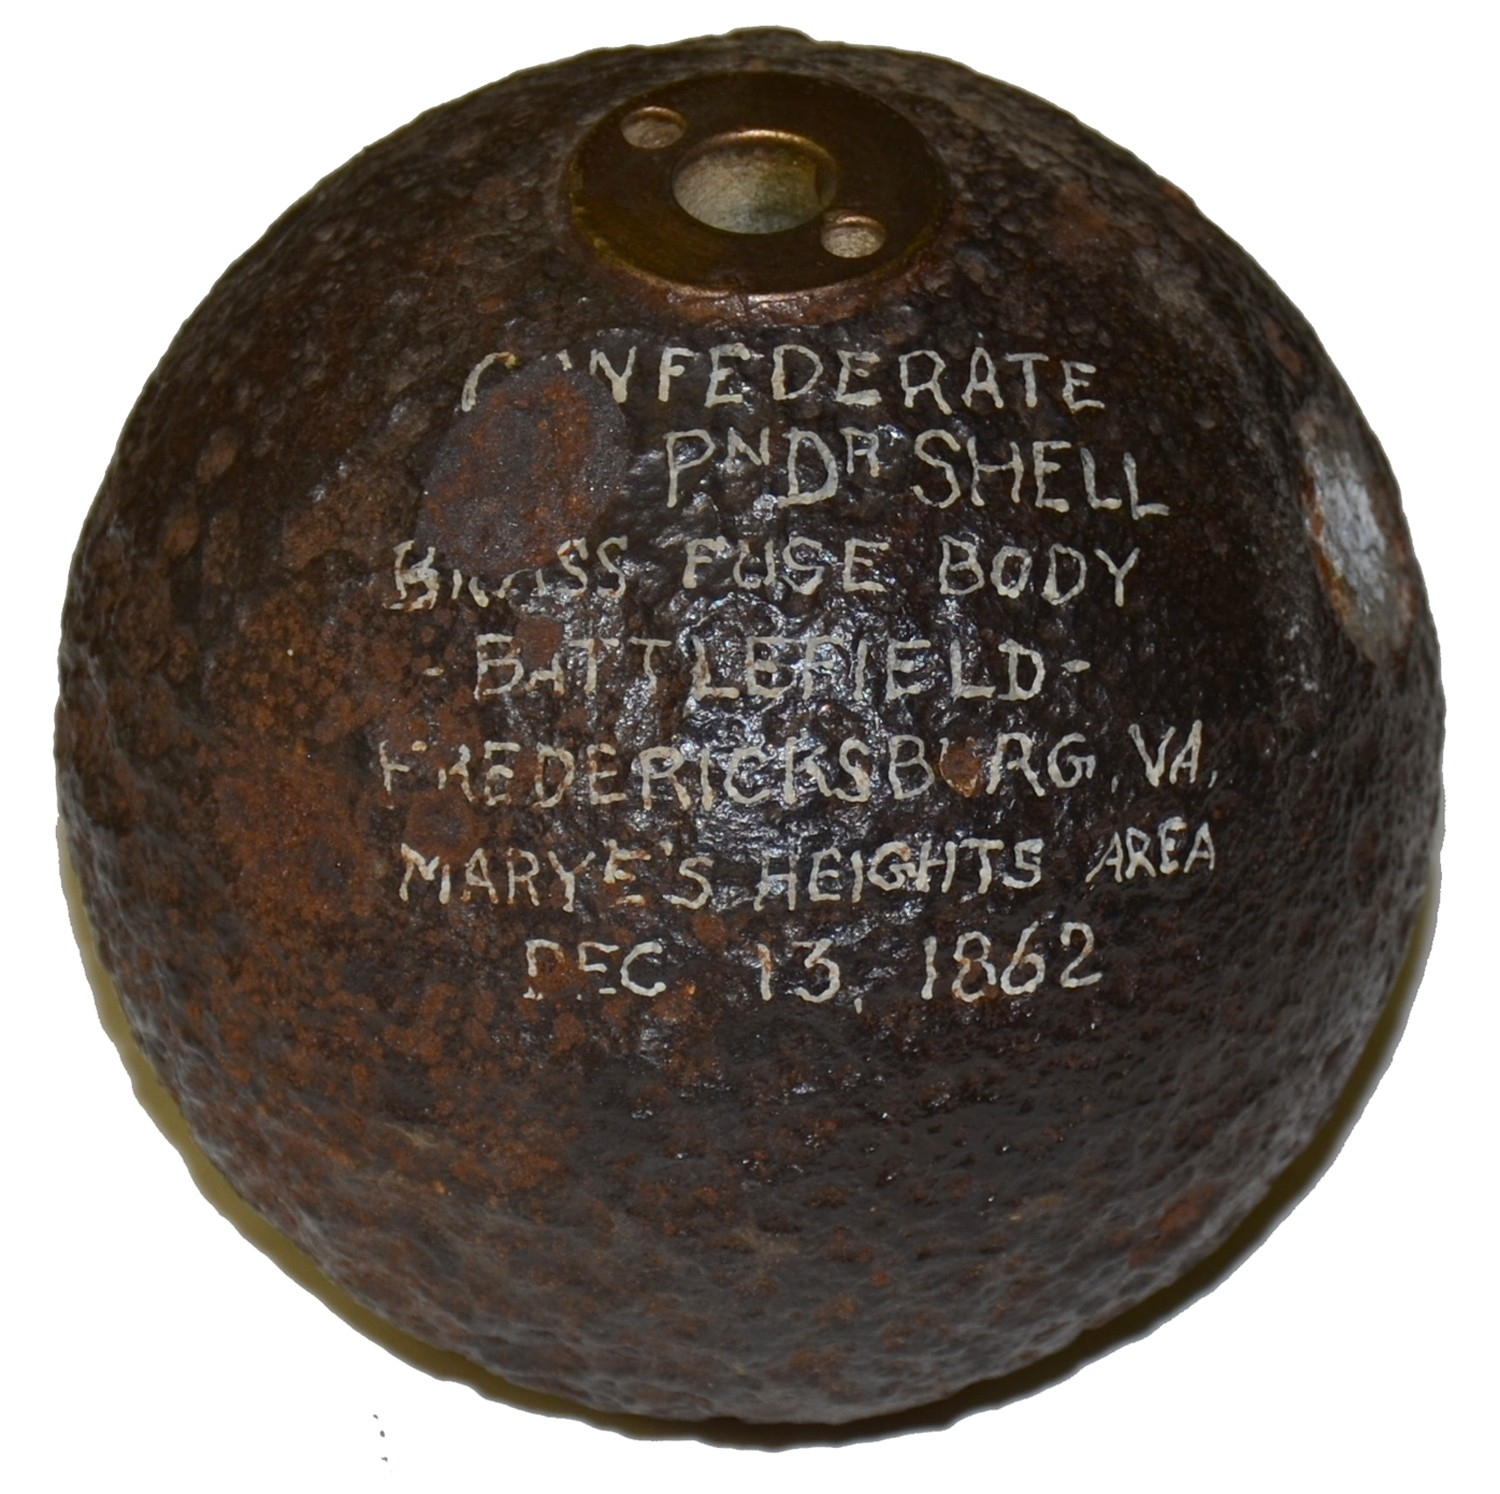 CS 4.52 INCH 12 POUND SPHERICAL CASE-SHOT LEAD SIDE-LOADER SHELL, RECOVERED AT FREDERICKSBURG, VA NEAR MARYE'S HEIGHTS